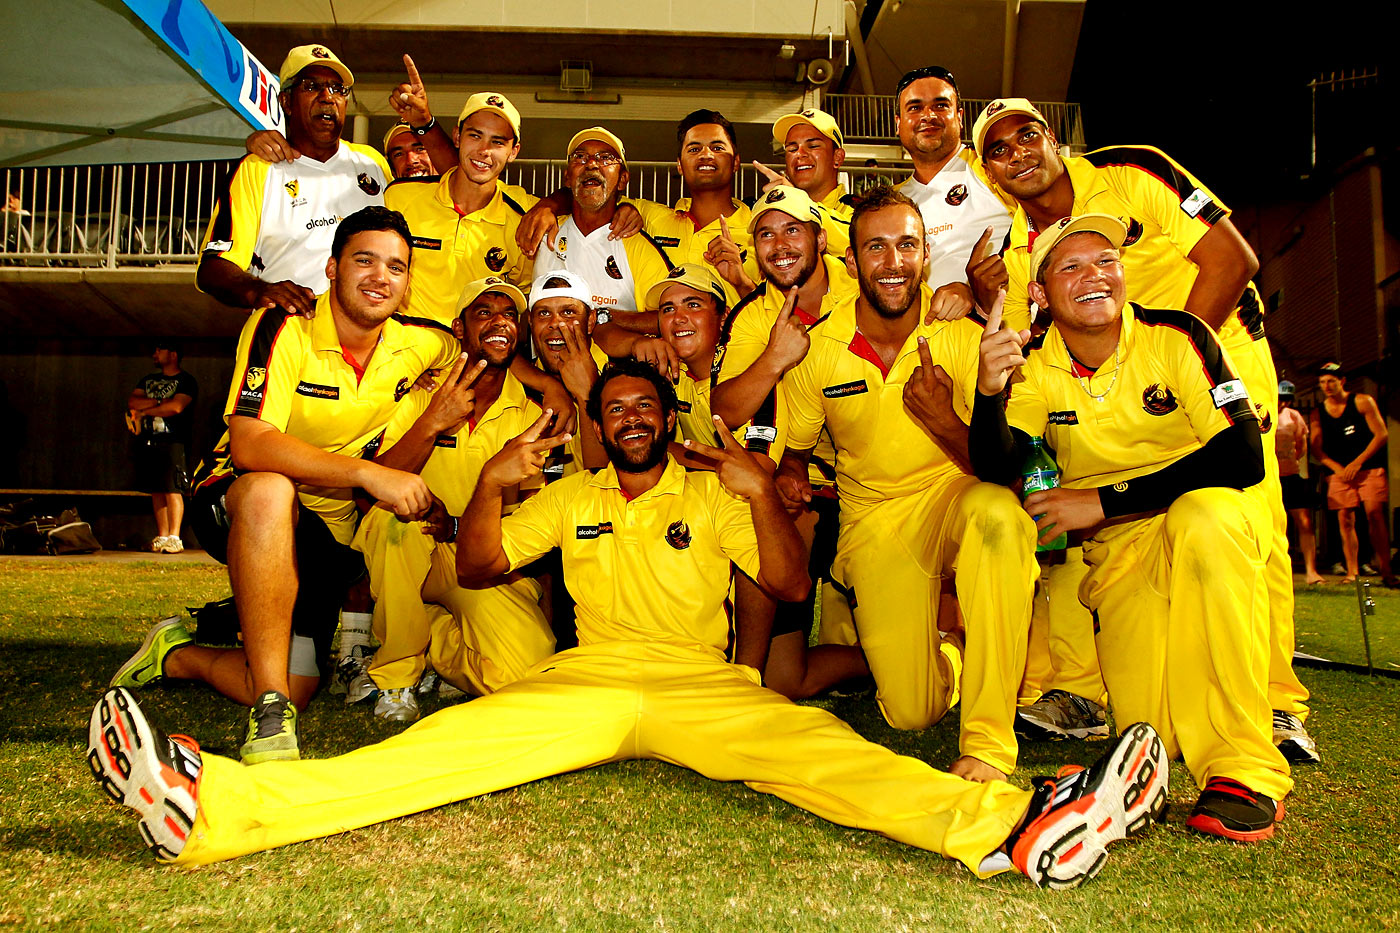 Bailey (kneeling, extreme left) captained Western Australia to victory in the 2014-15 Imparja Cup